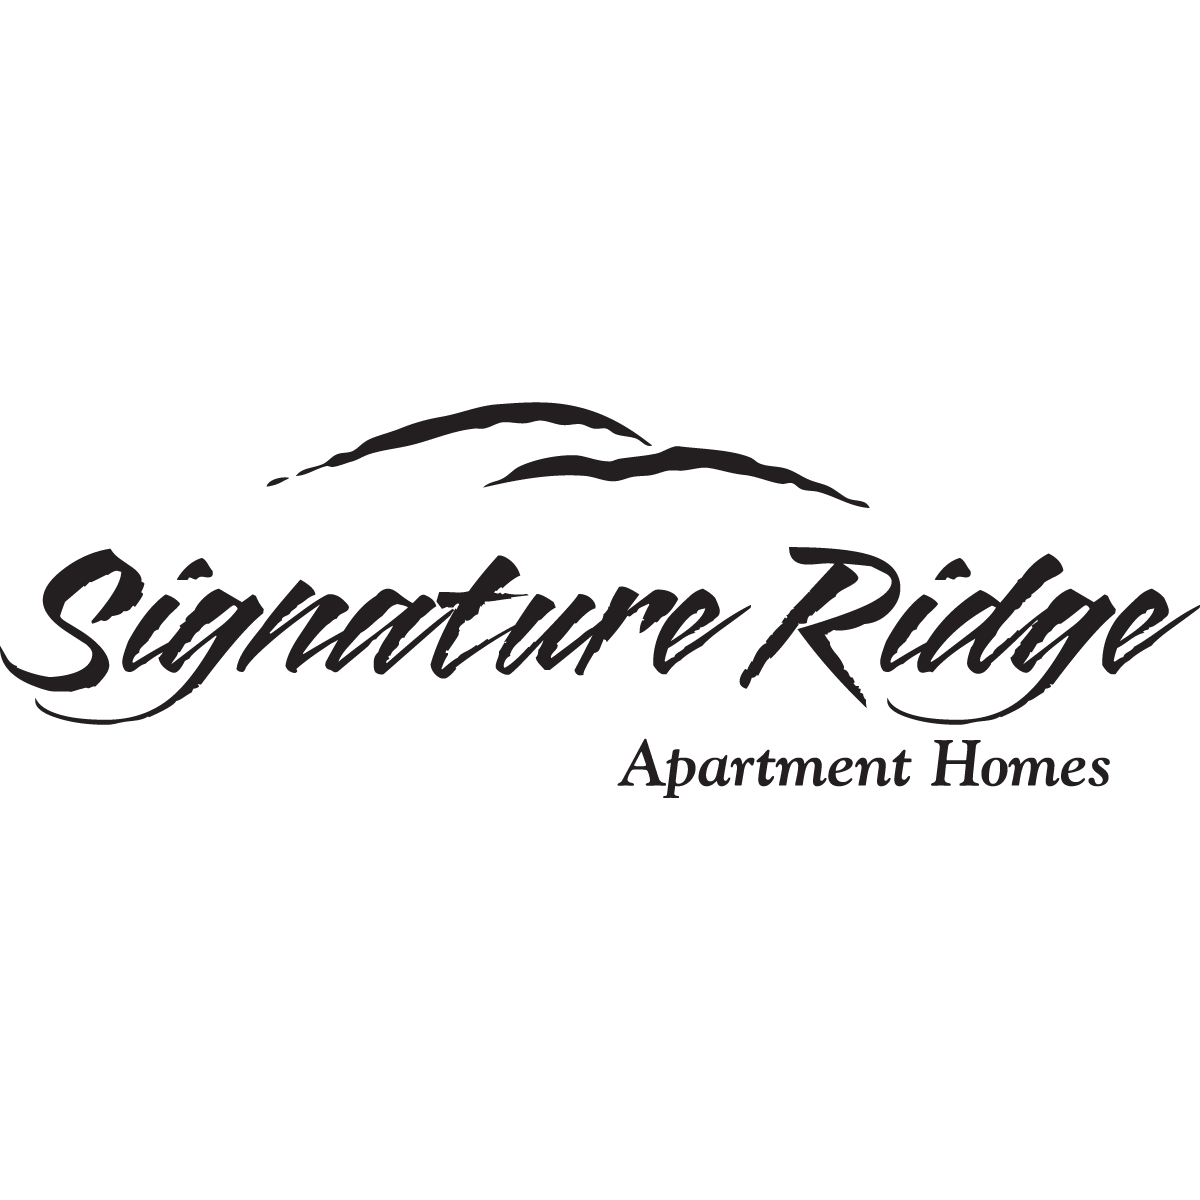 Signature Ridge Apartments